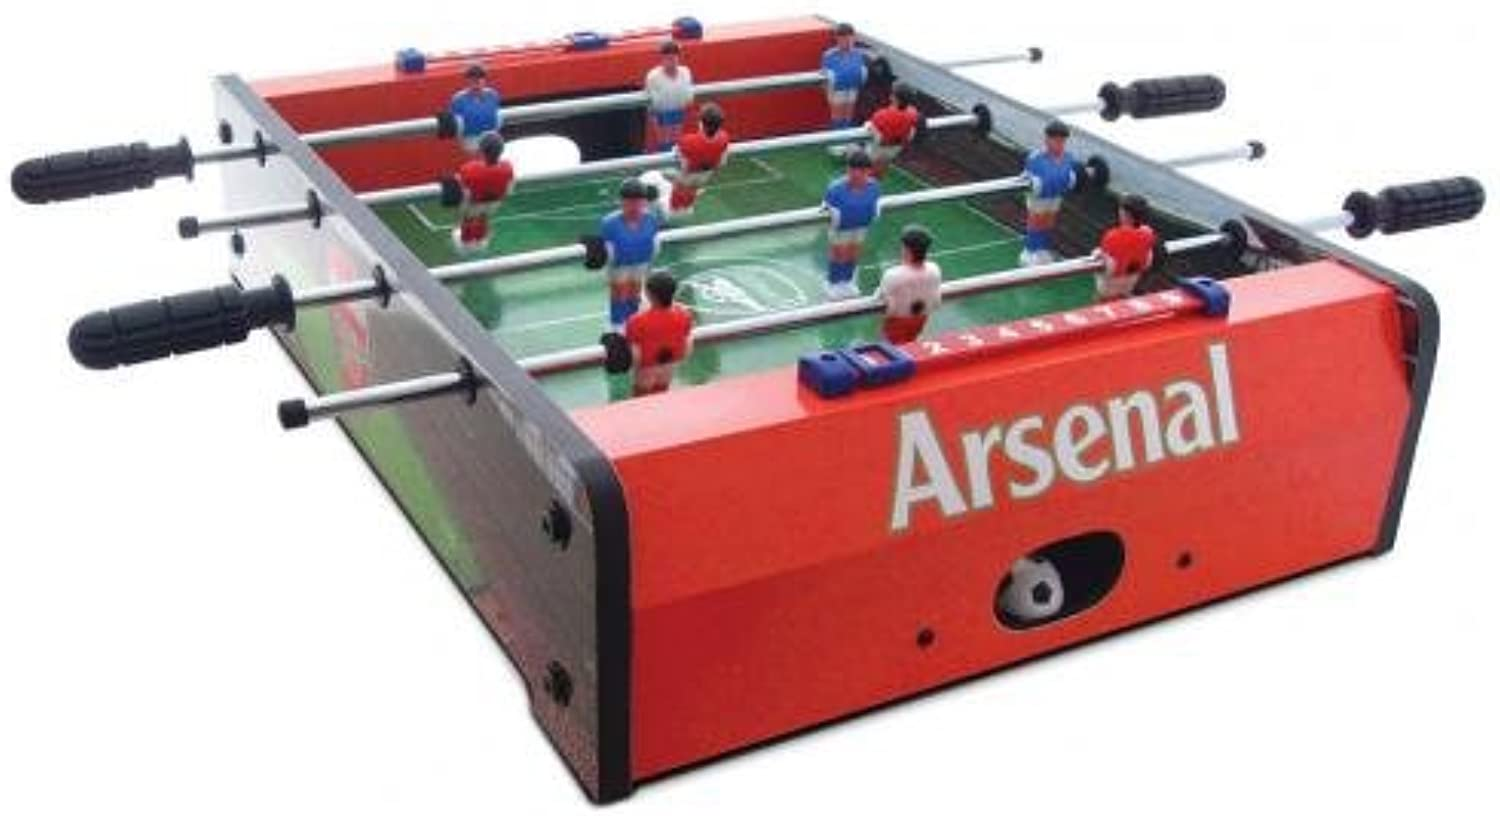 Official Licensed Arsenal F.C - 20  Football Table Game Game Game B00YUGOKC4  Verkauf neuer Produkte f0840c